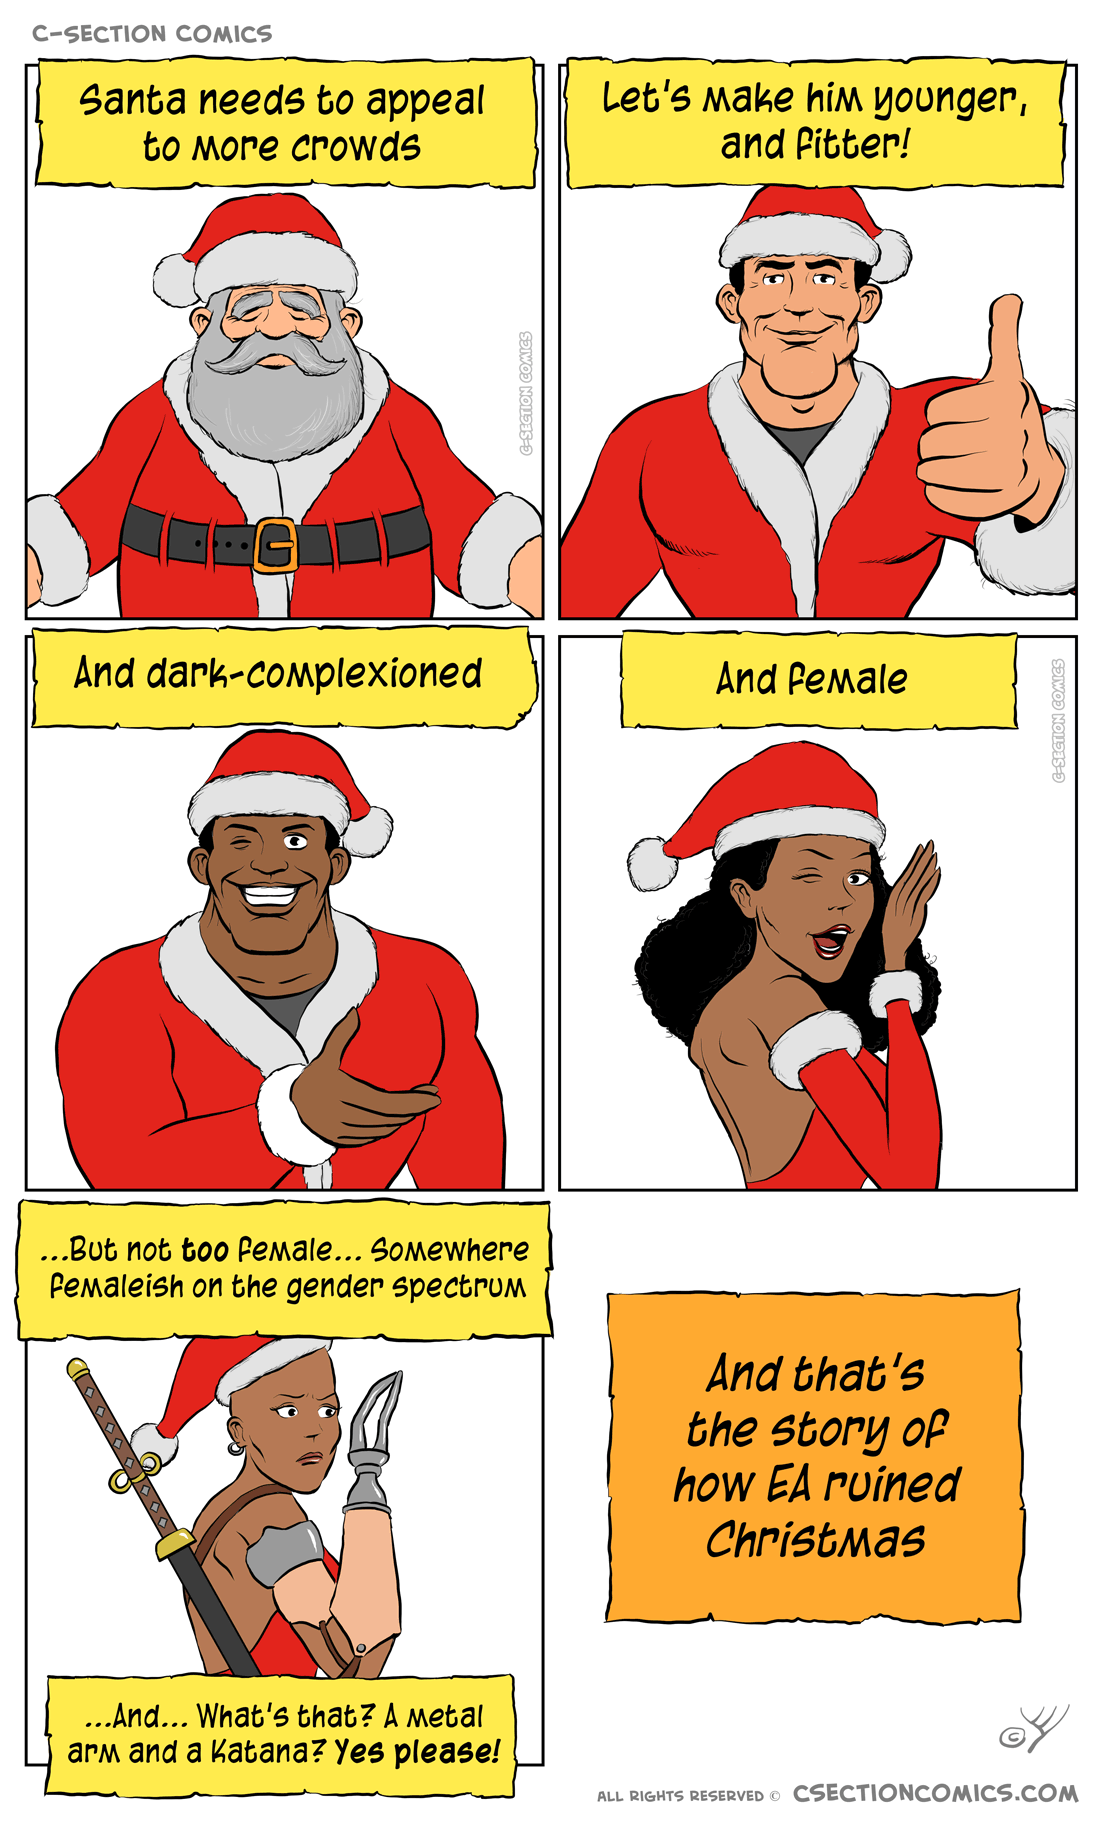 Accept it, or don't celebrate Christmas.